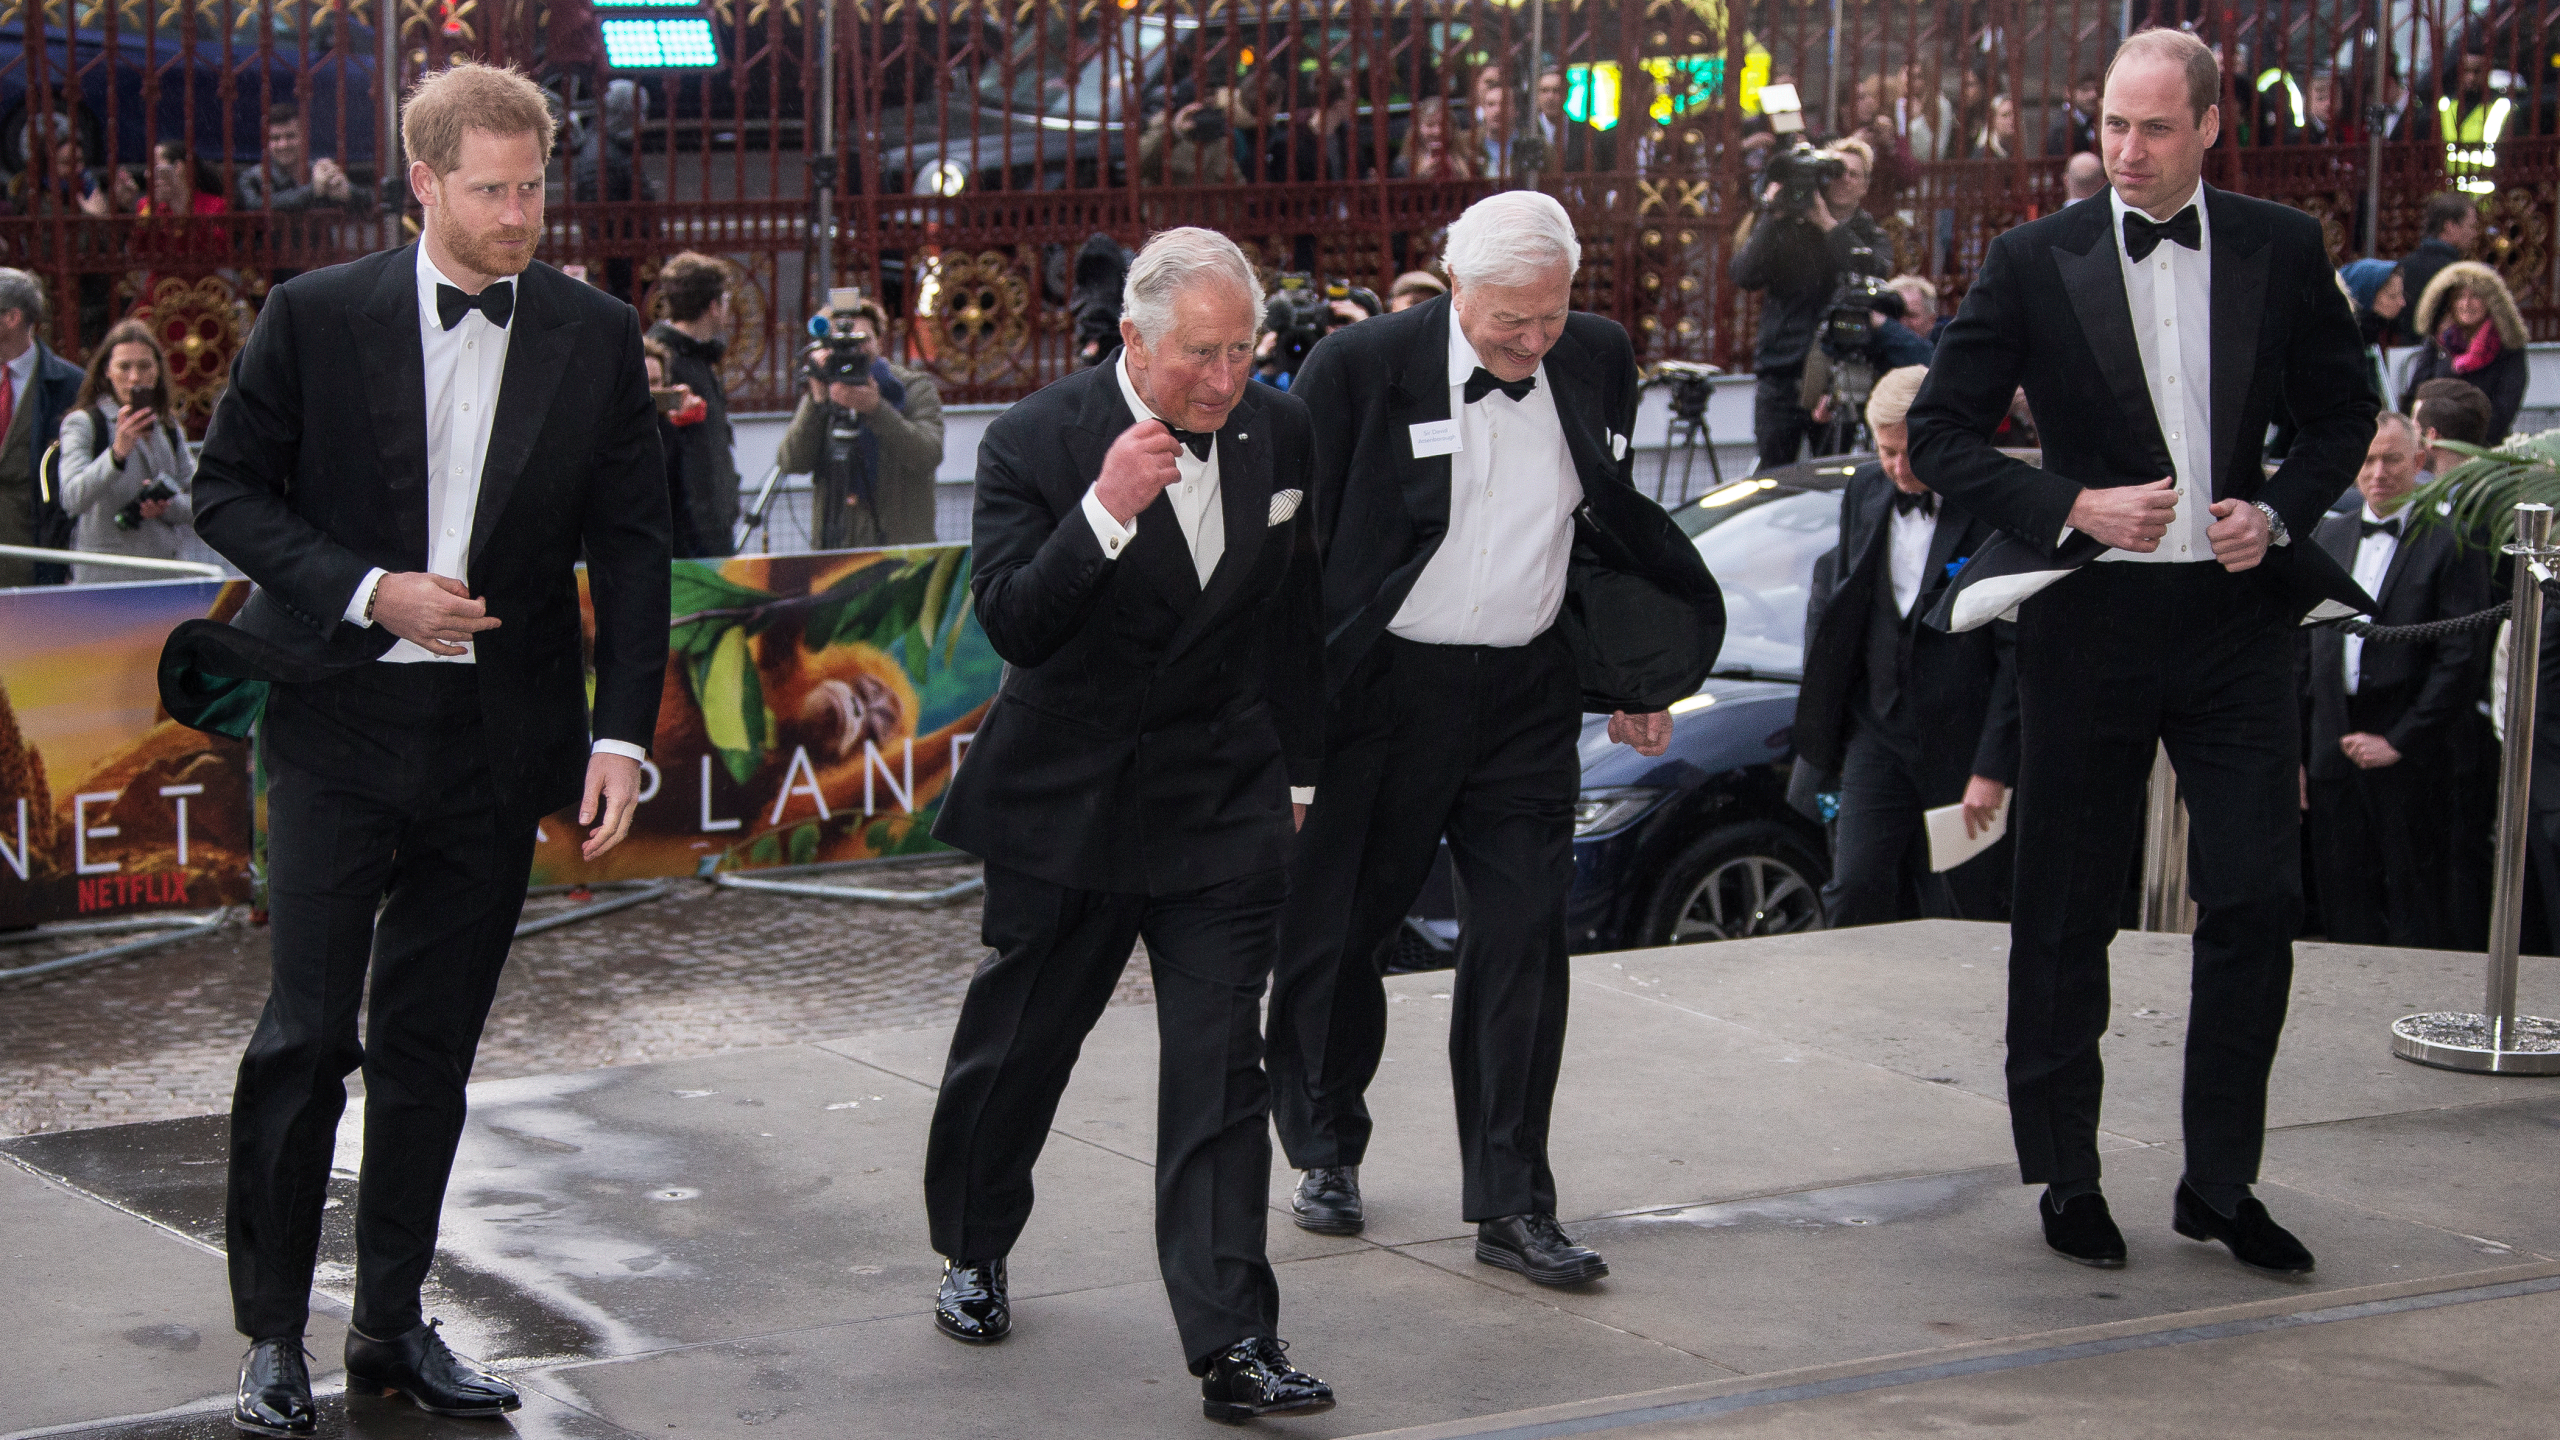 Prince-Charles-William-Harry--AP_1554414282007.png